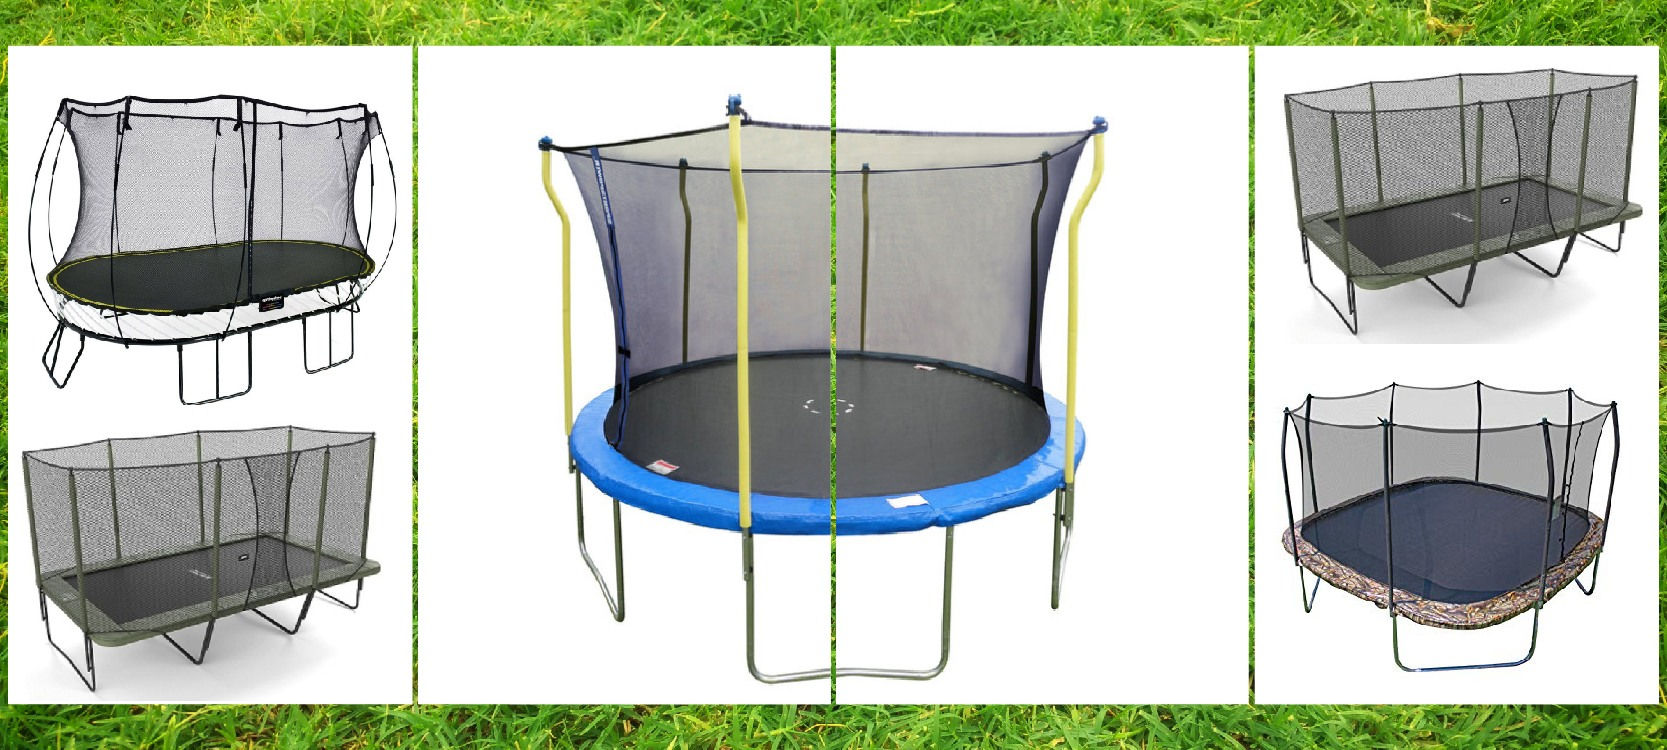 the five trampolines for shape collection rectangular vs oval vs round vs square